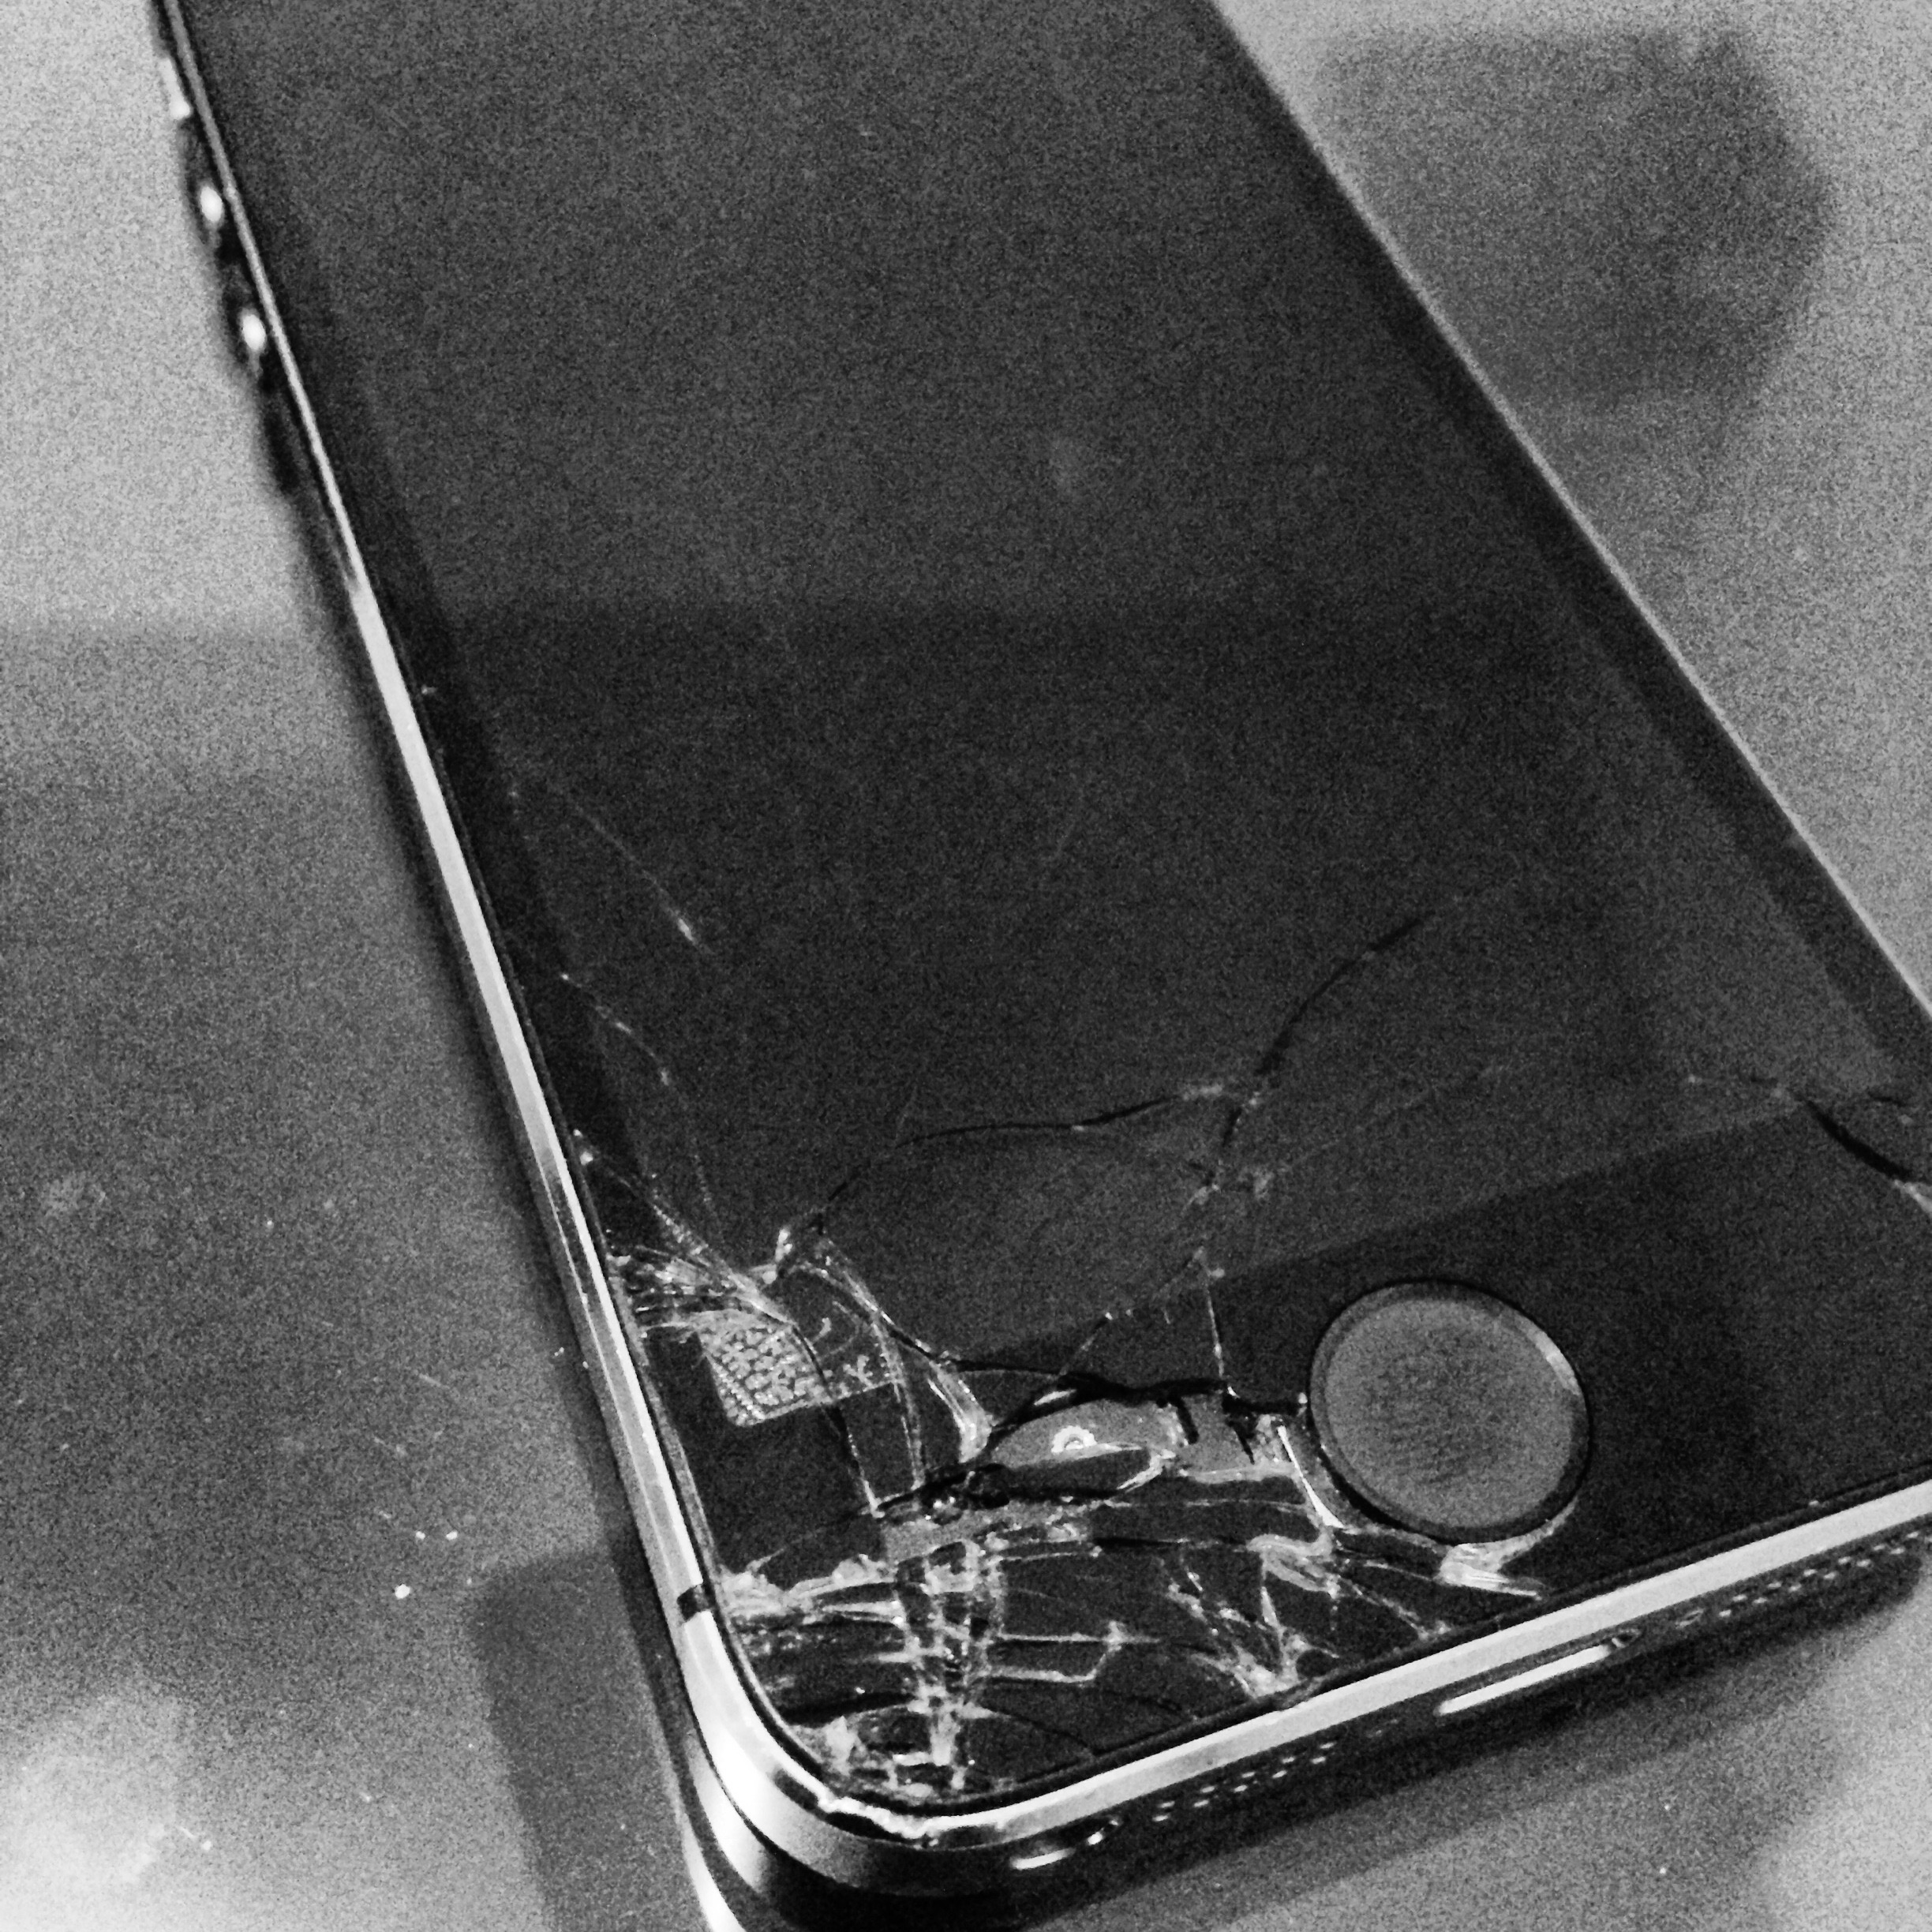 Help! iPhone Screen Replacement! My iPhone Screen Cracked